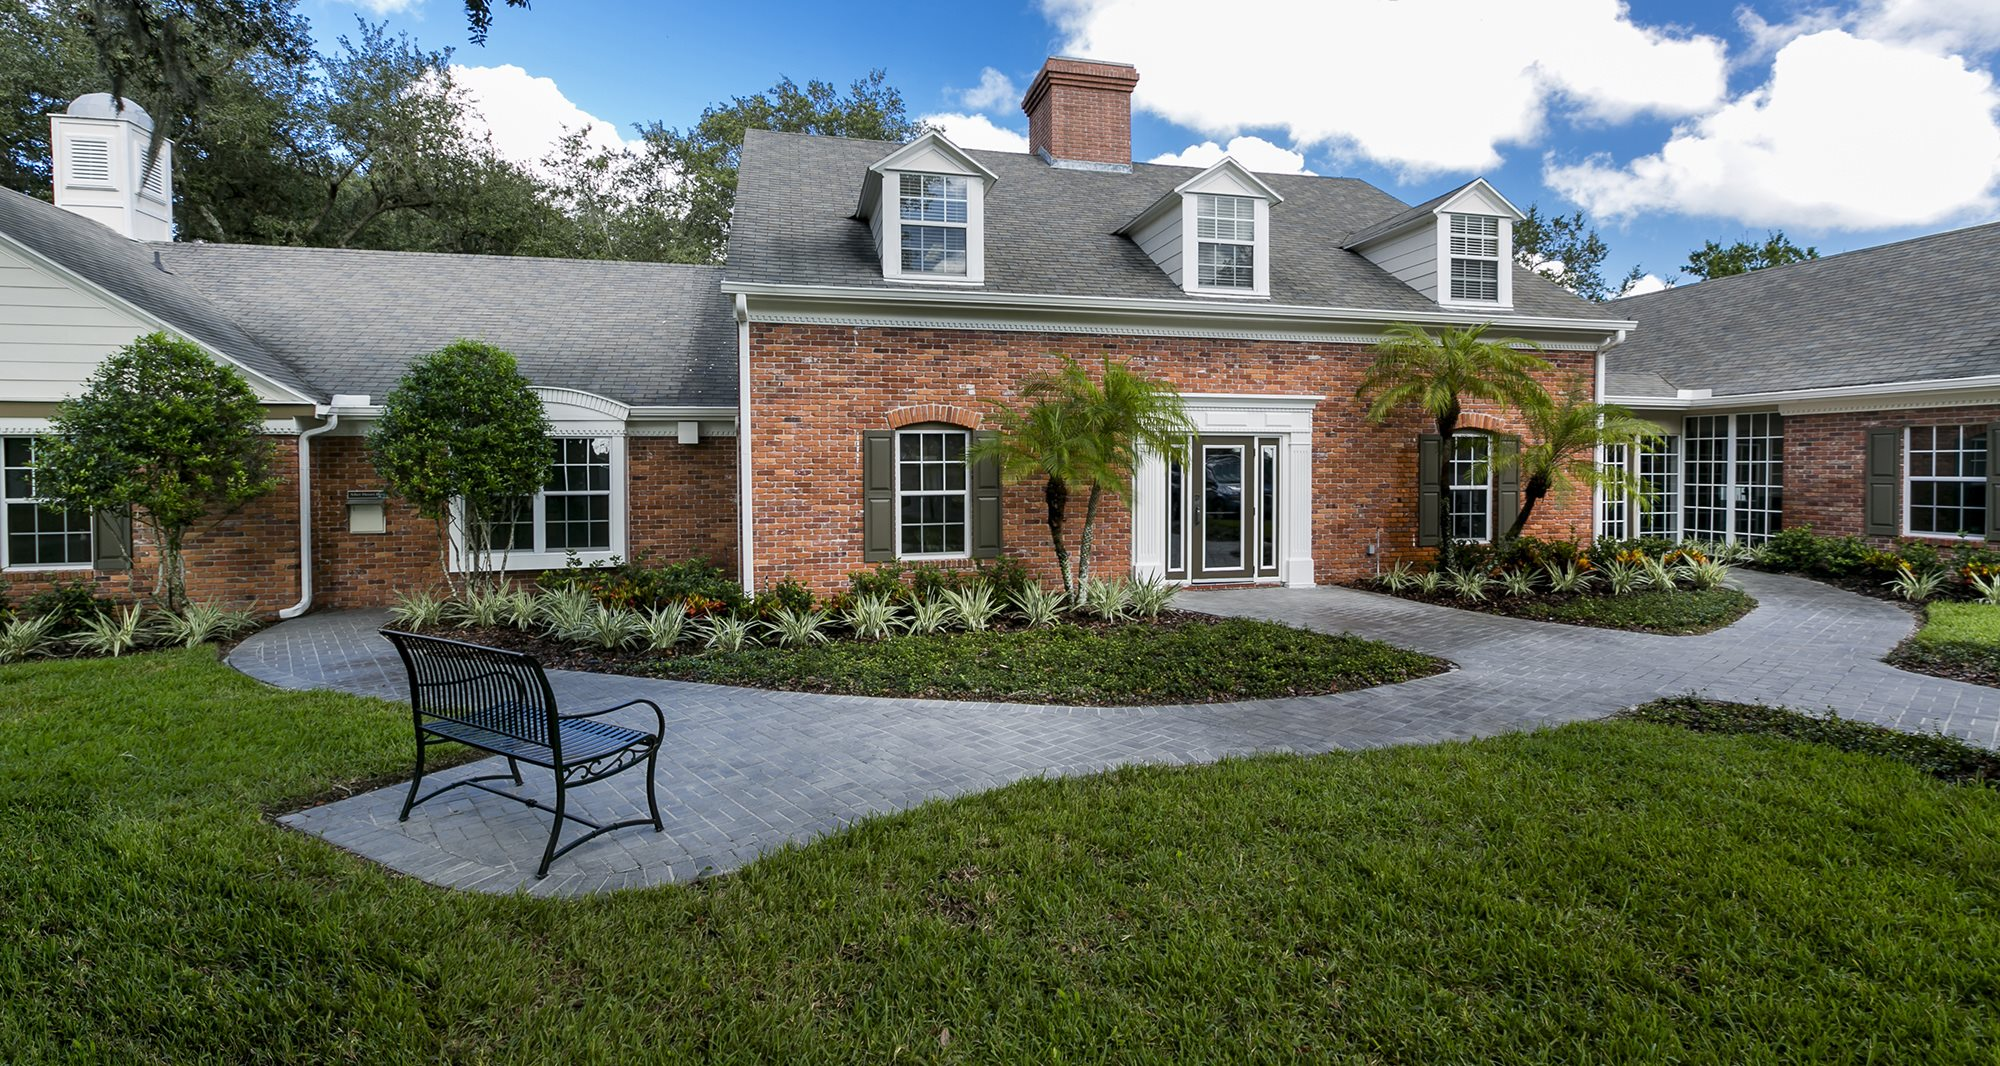 Lakewood shores apartments in brandon fl for 4 bedroom apartments brandon fl